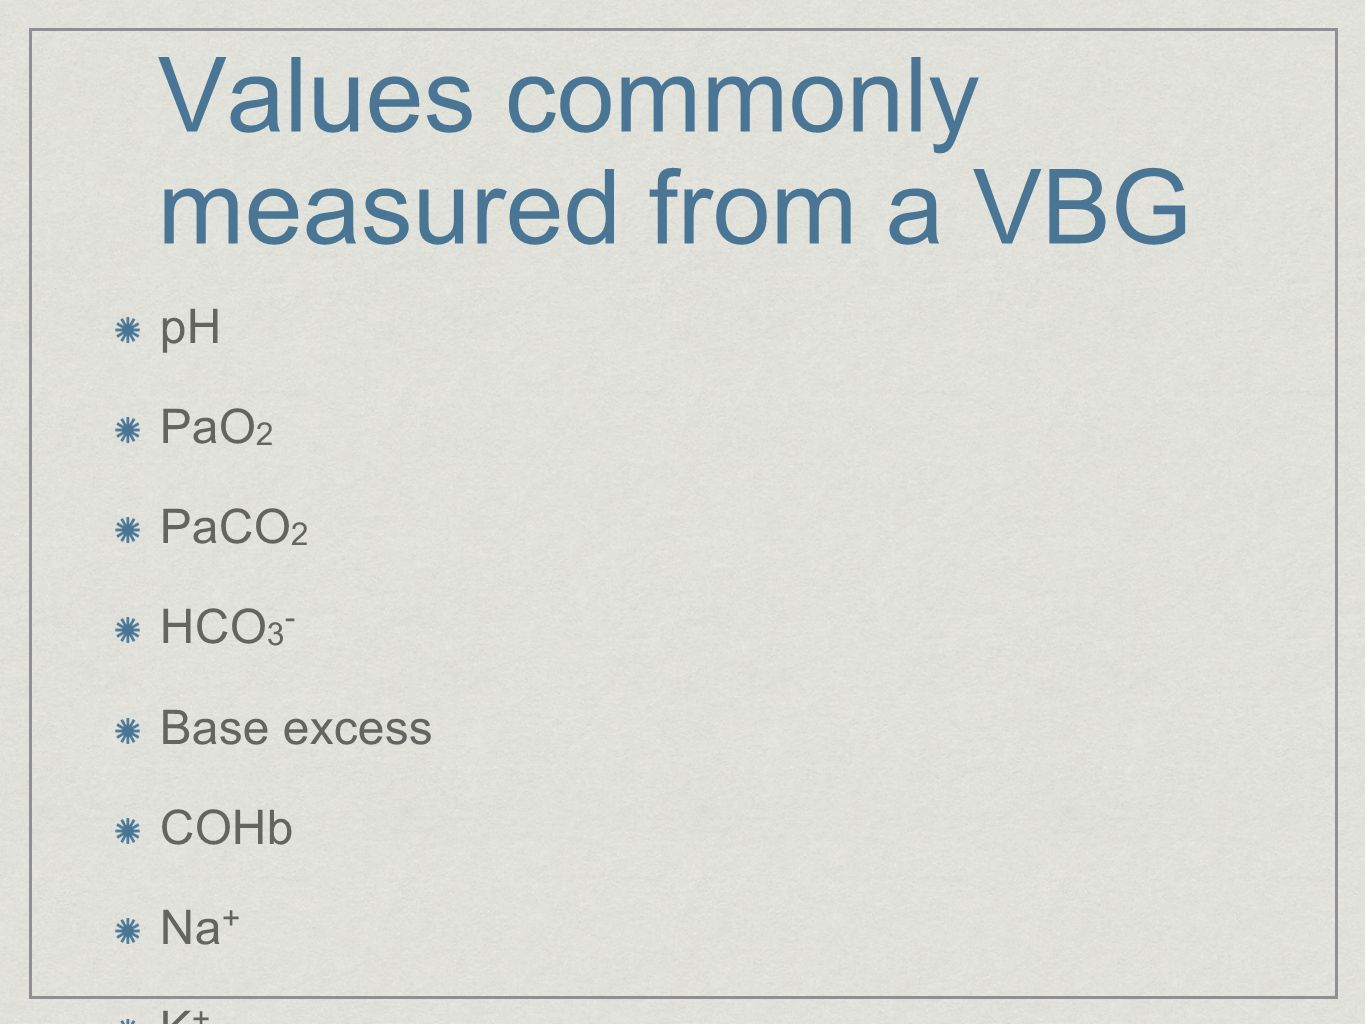 Values commonly measured from a VBG